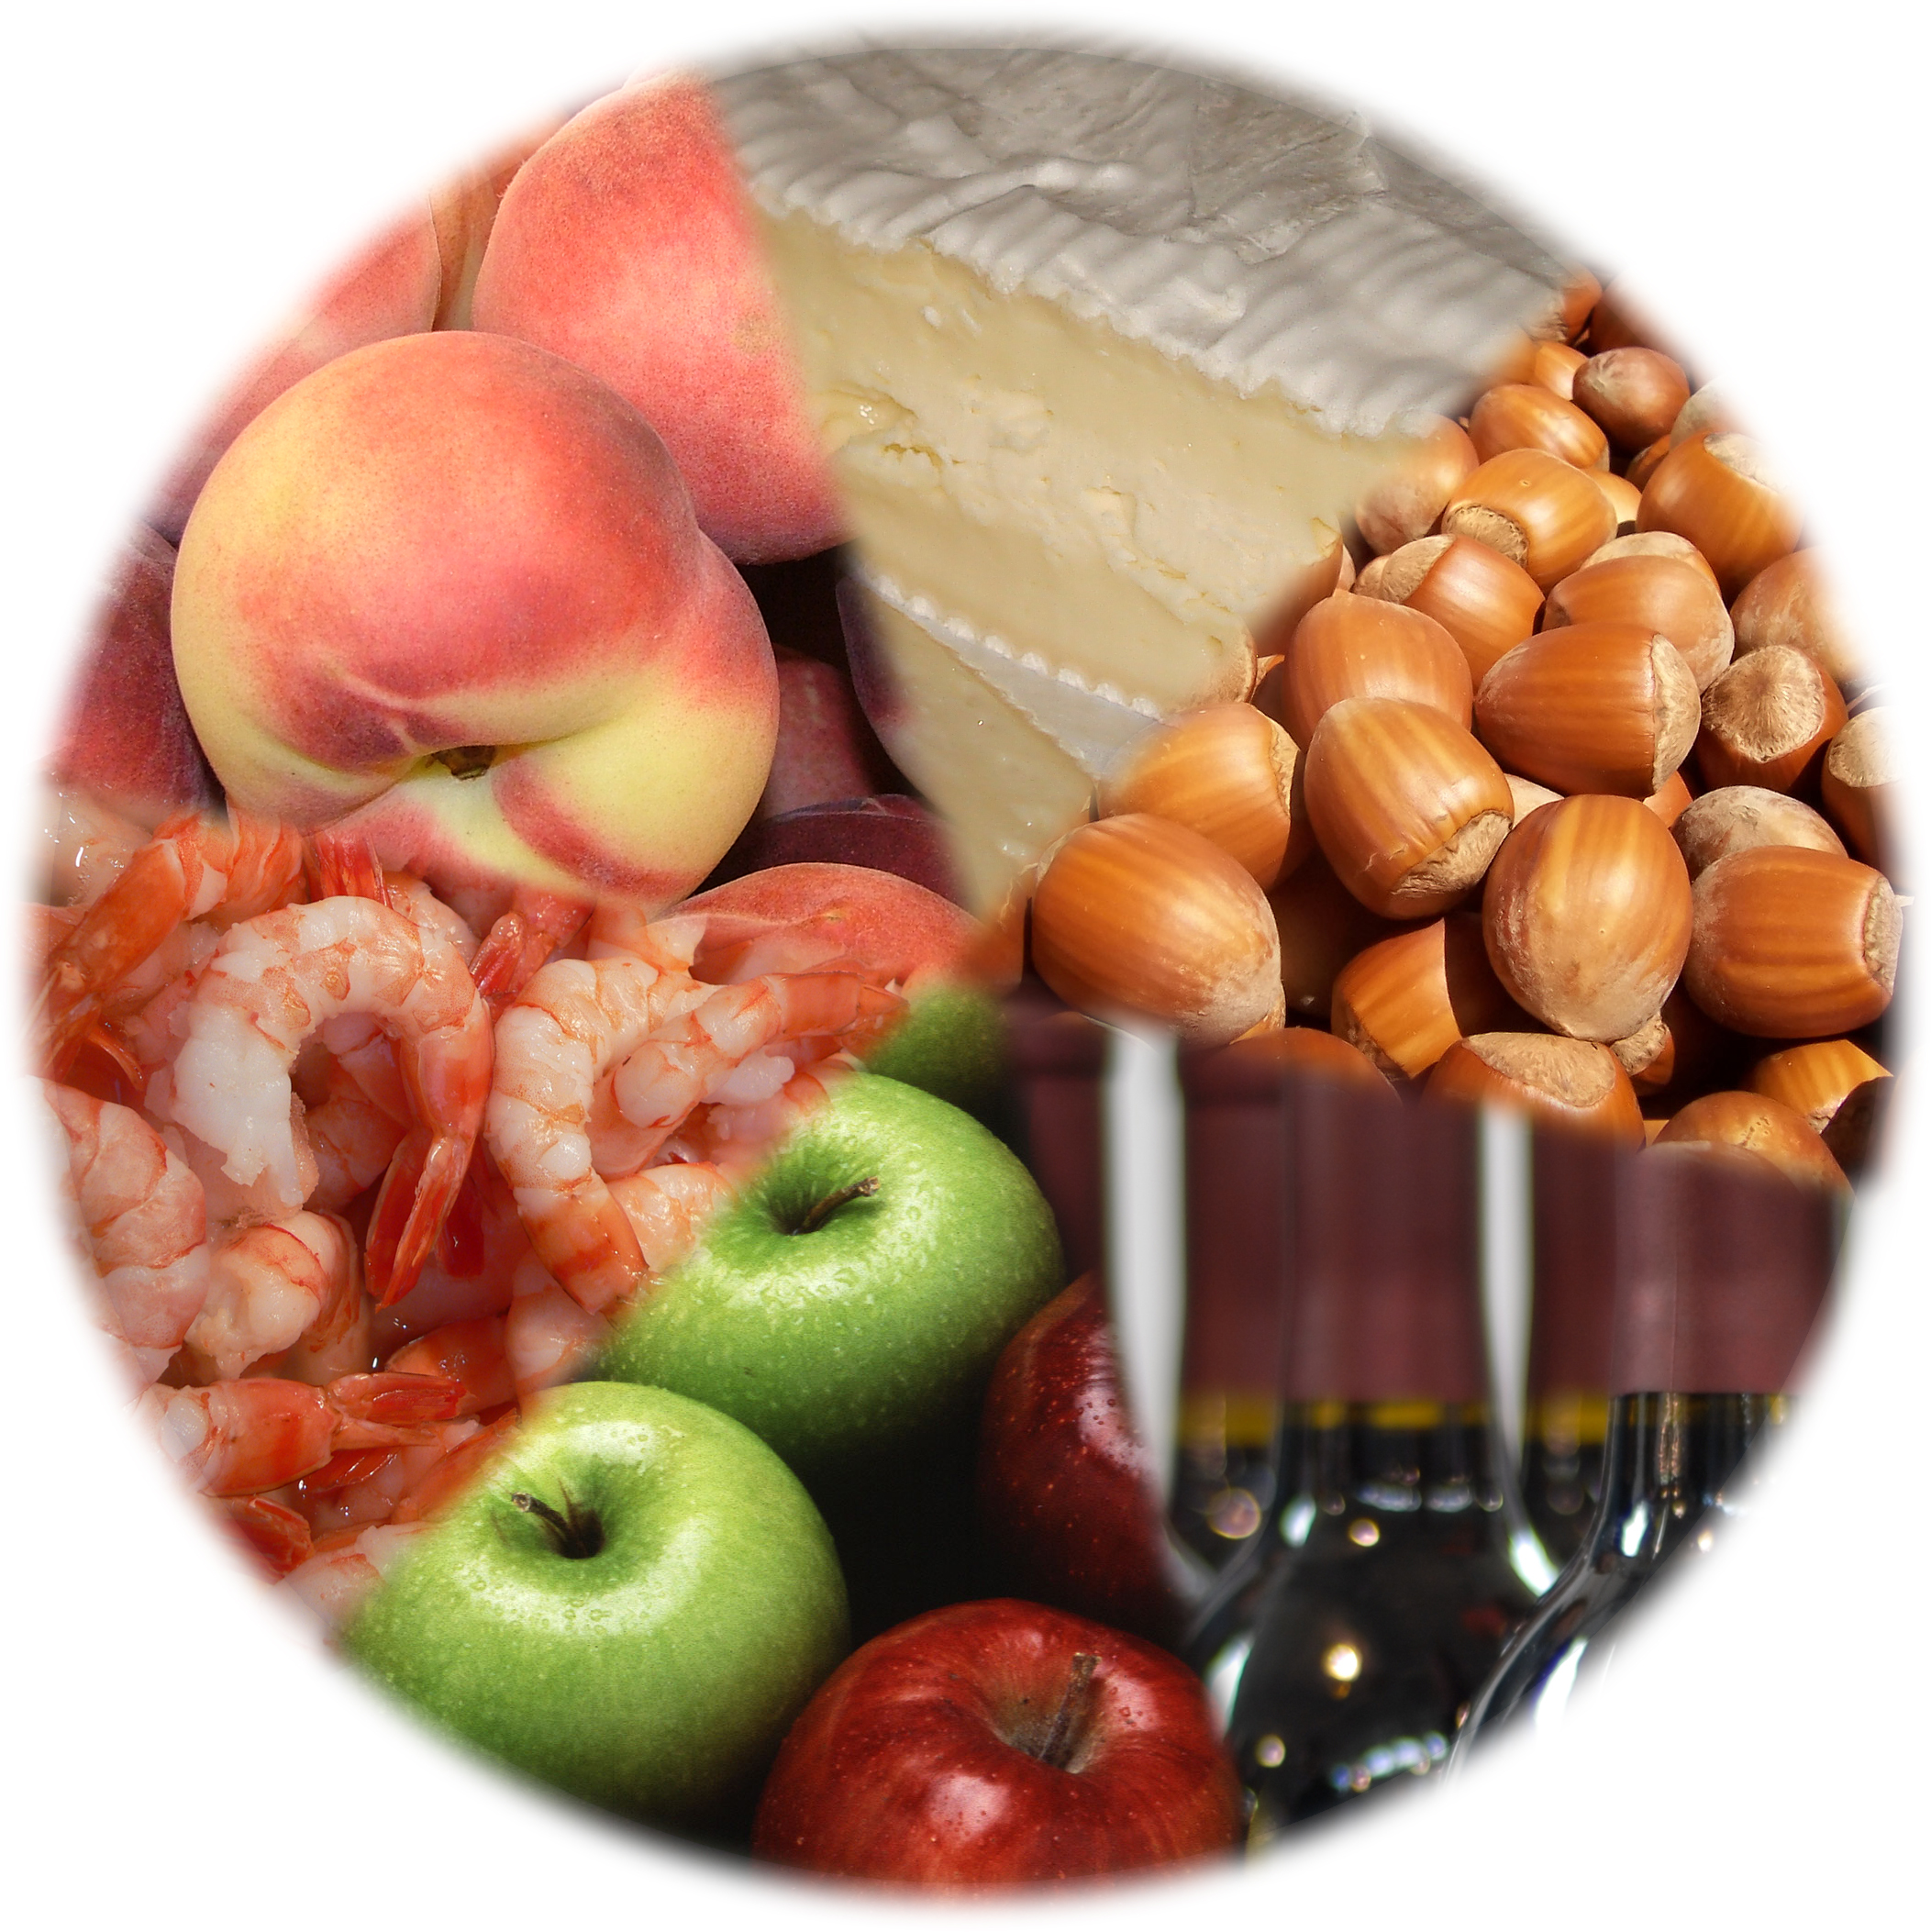 Food Allergies That Can Cause Ibs Symptoms